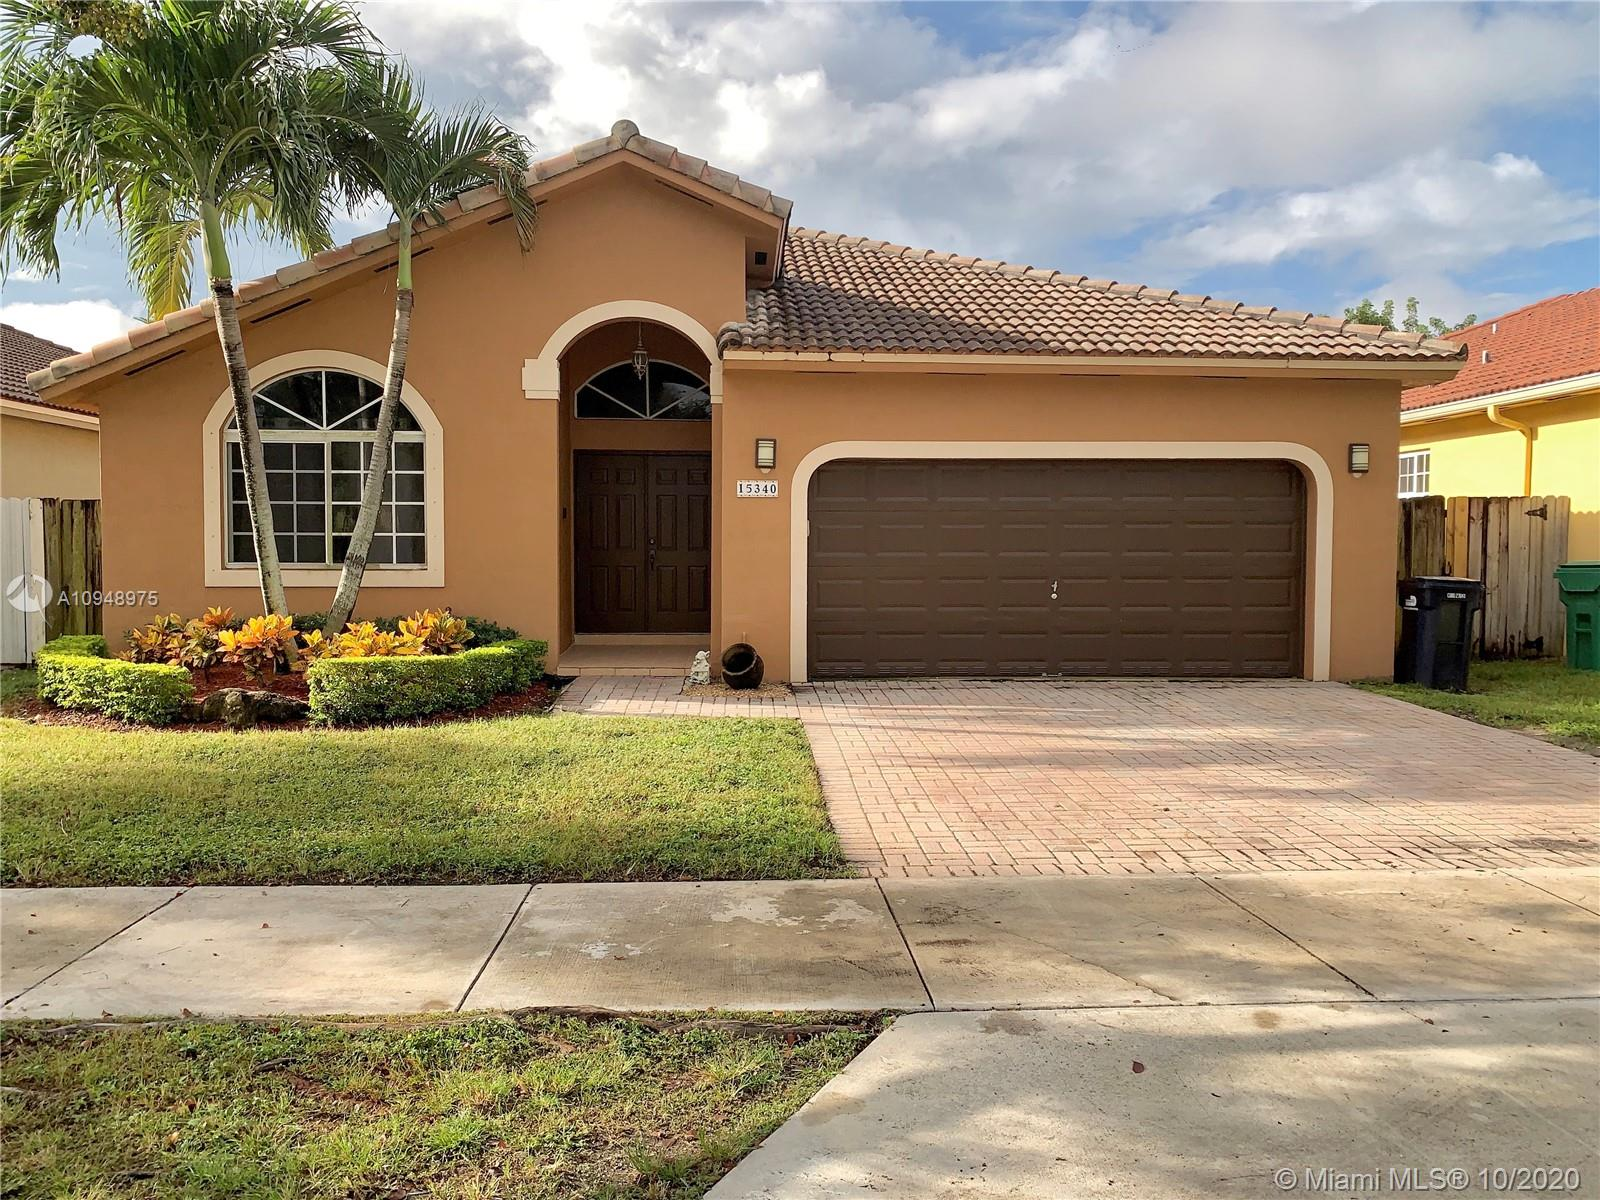 Details for 15340 32nd Ter, Miami, FL 33185